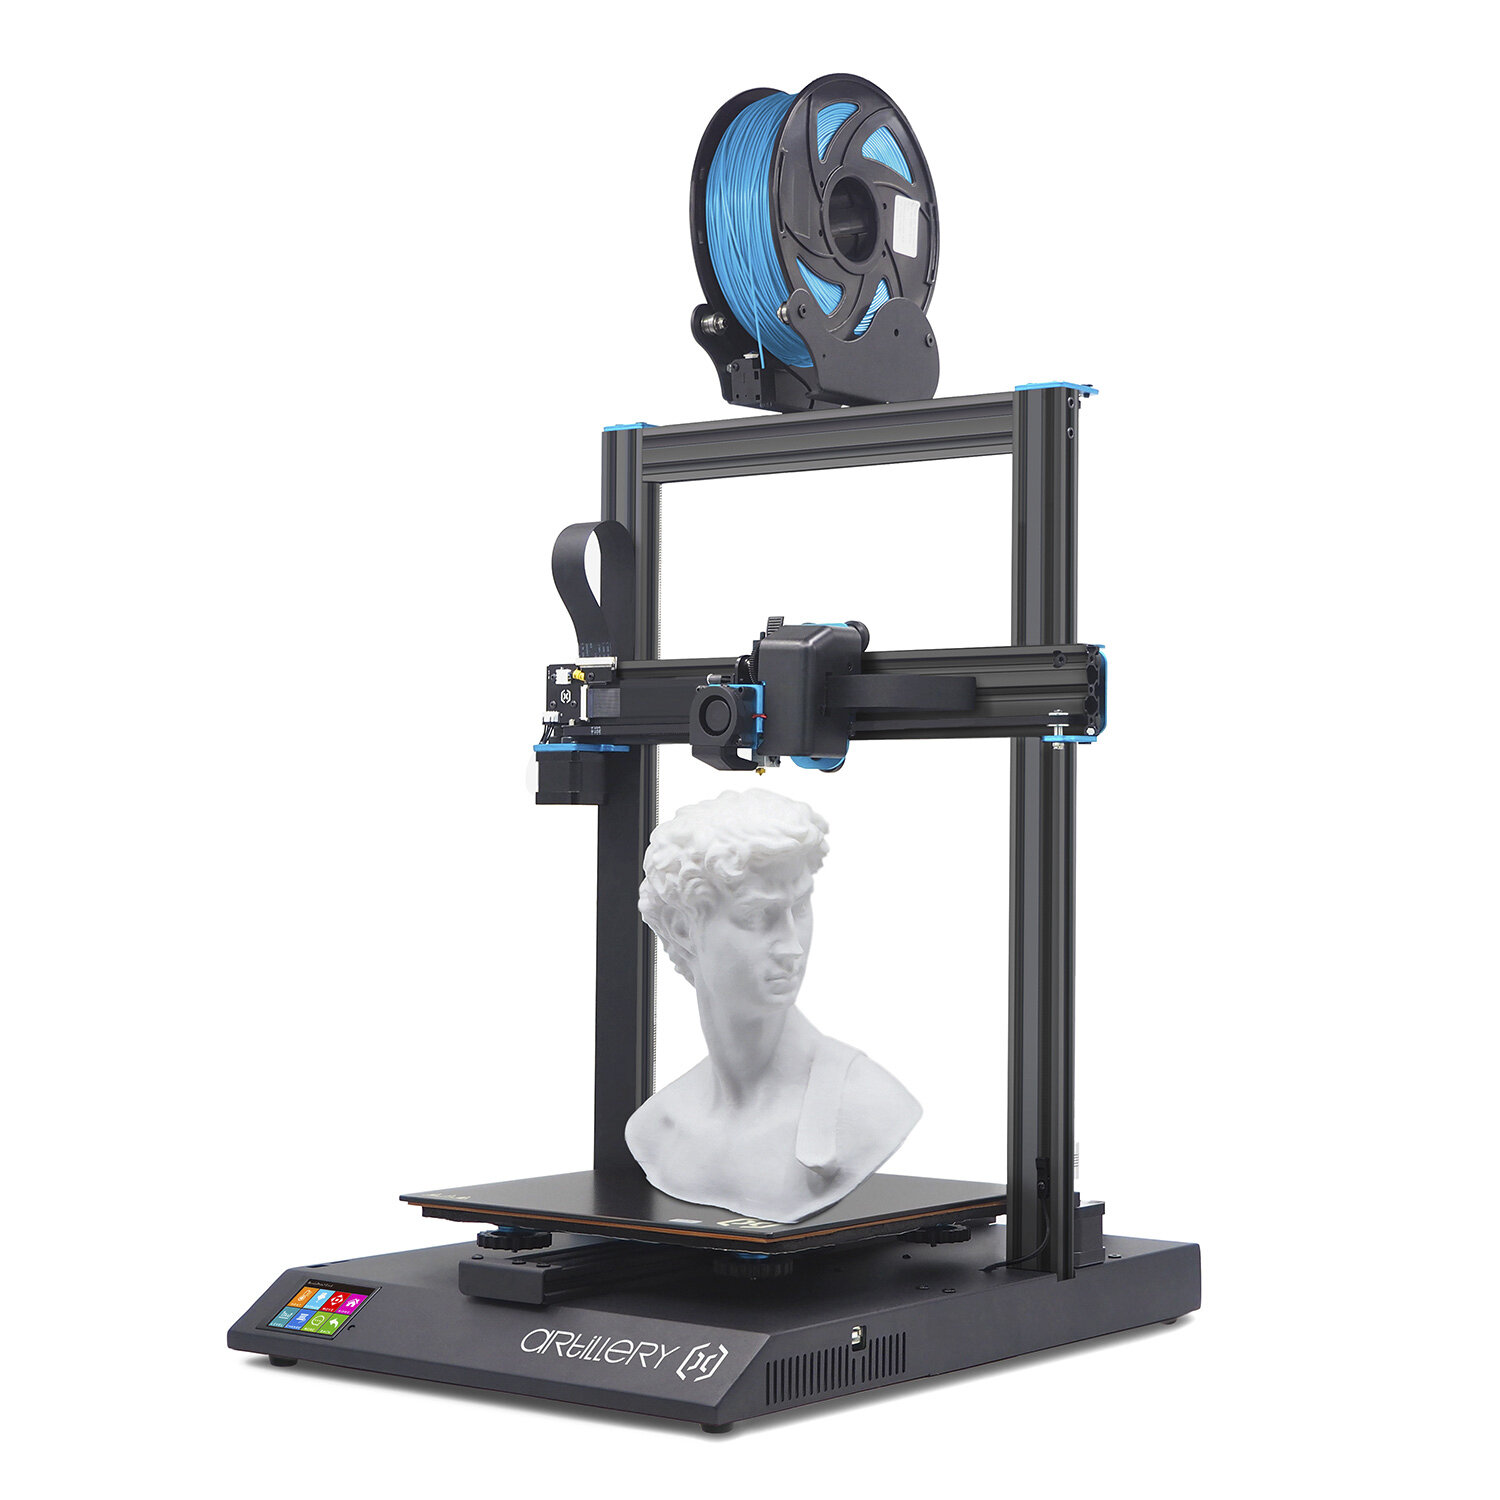 Artillery® Sidewinder X1 3D Printer Kit with 300*300*400mm Large Print Size Support Resume Printing&Filament Runout Dete